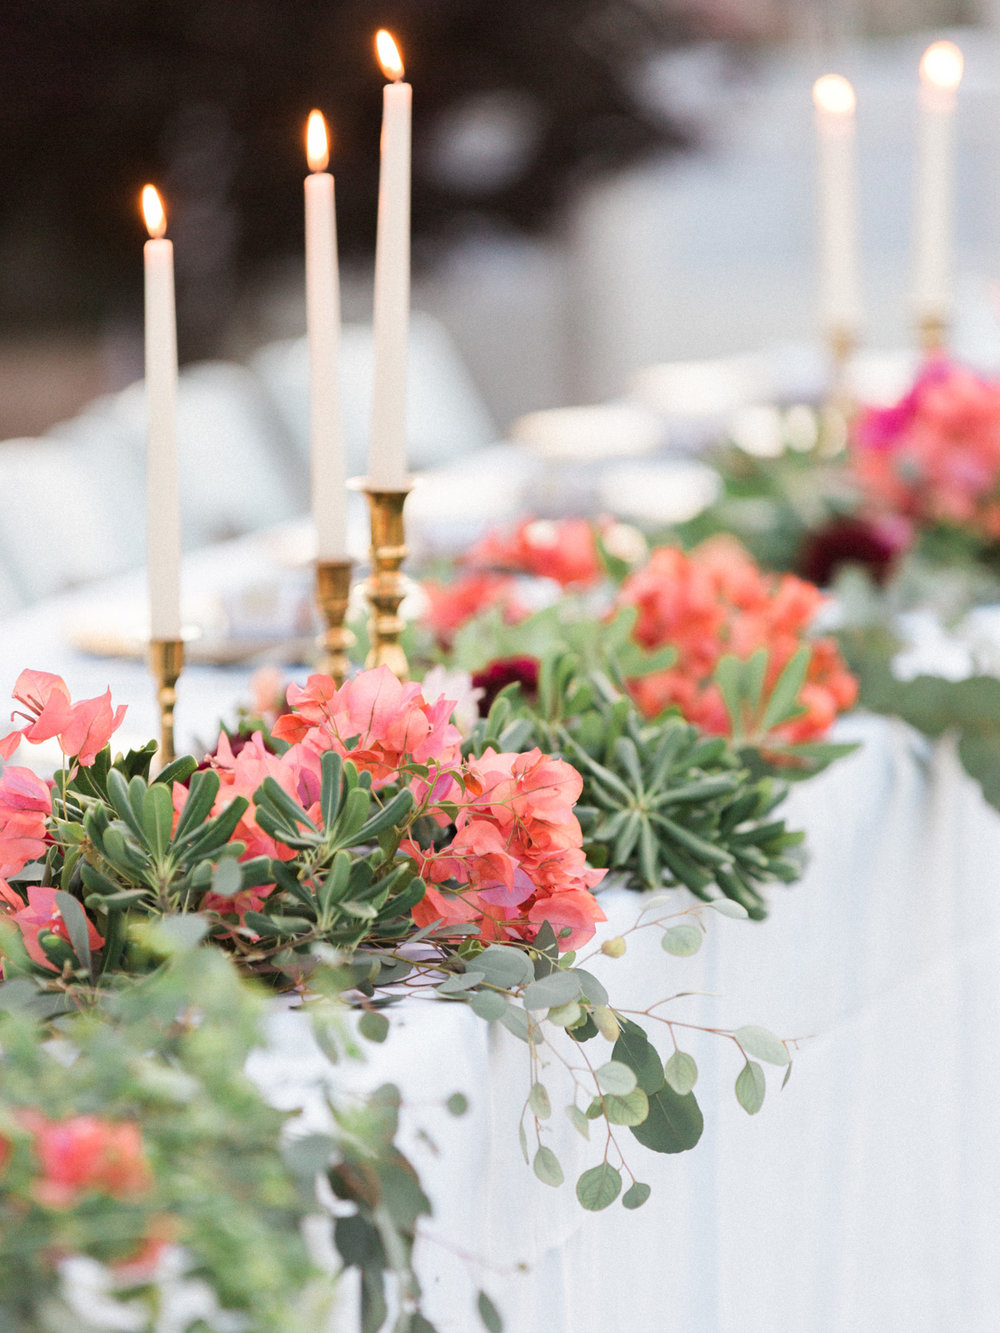 Beautiful head table settings with greenery, bougainvillea and brass candlestick holders